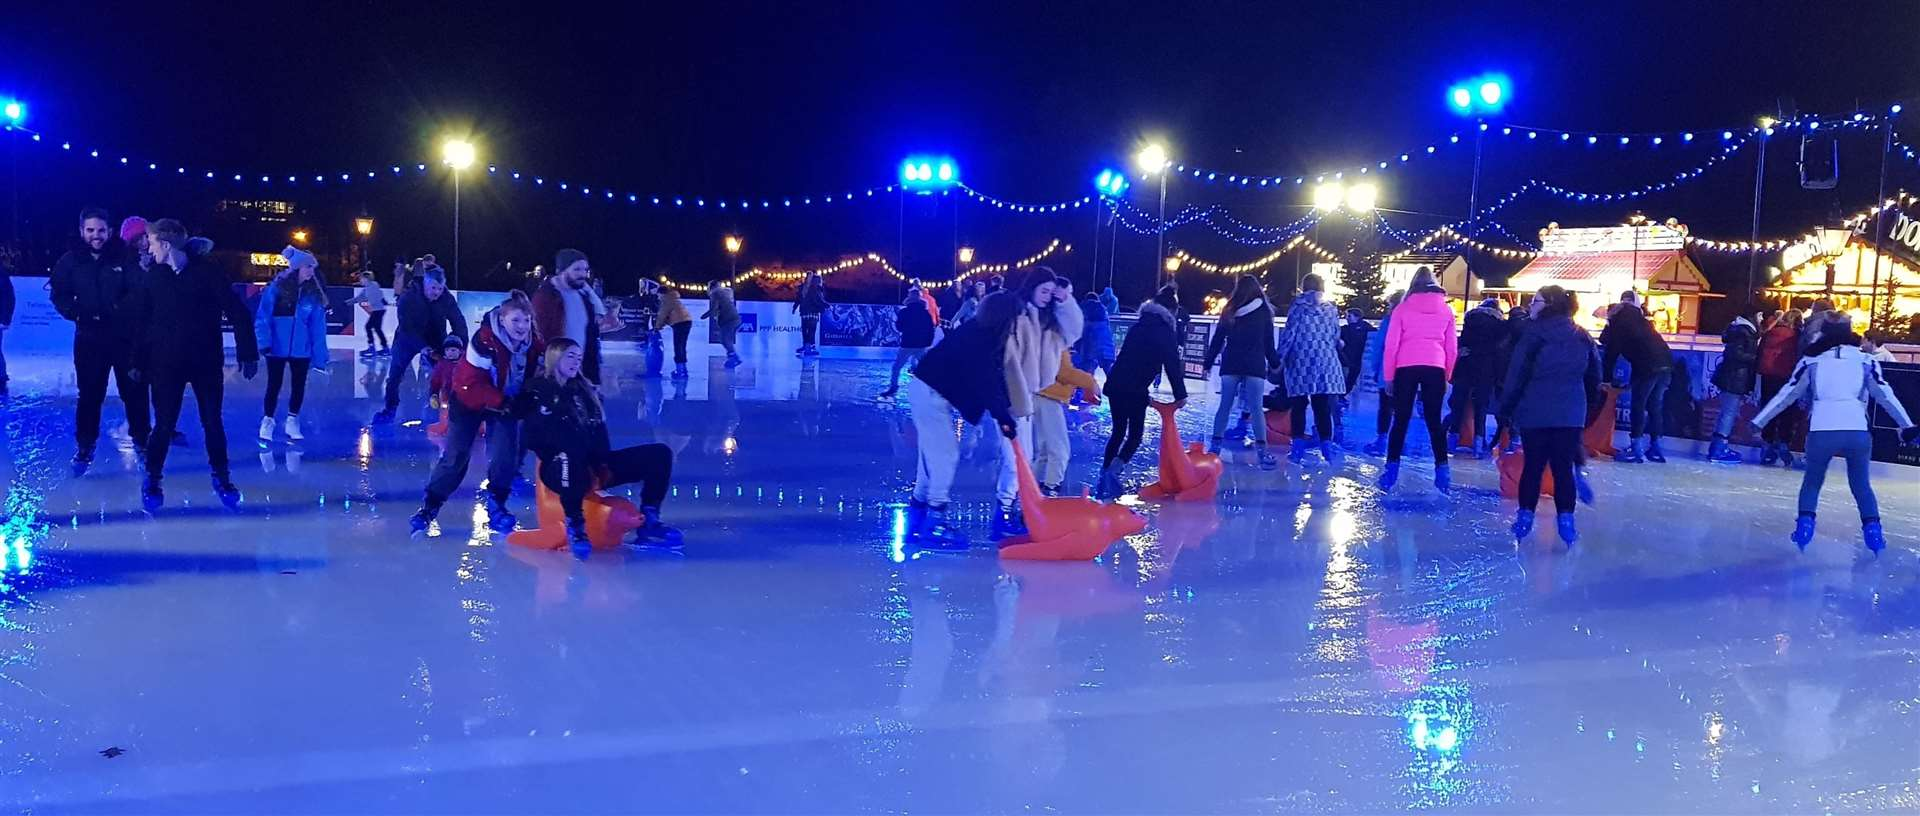 People will be able to skate in Tunbridge Wells during the Christmas season